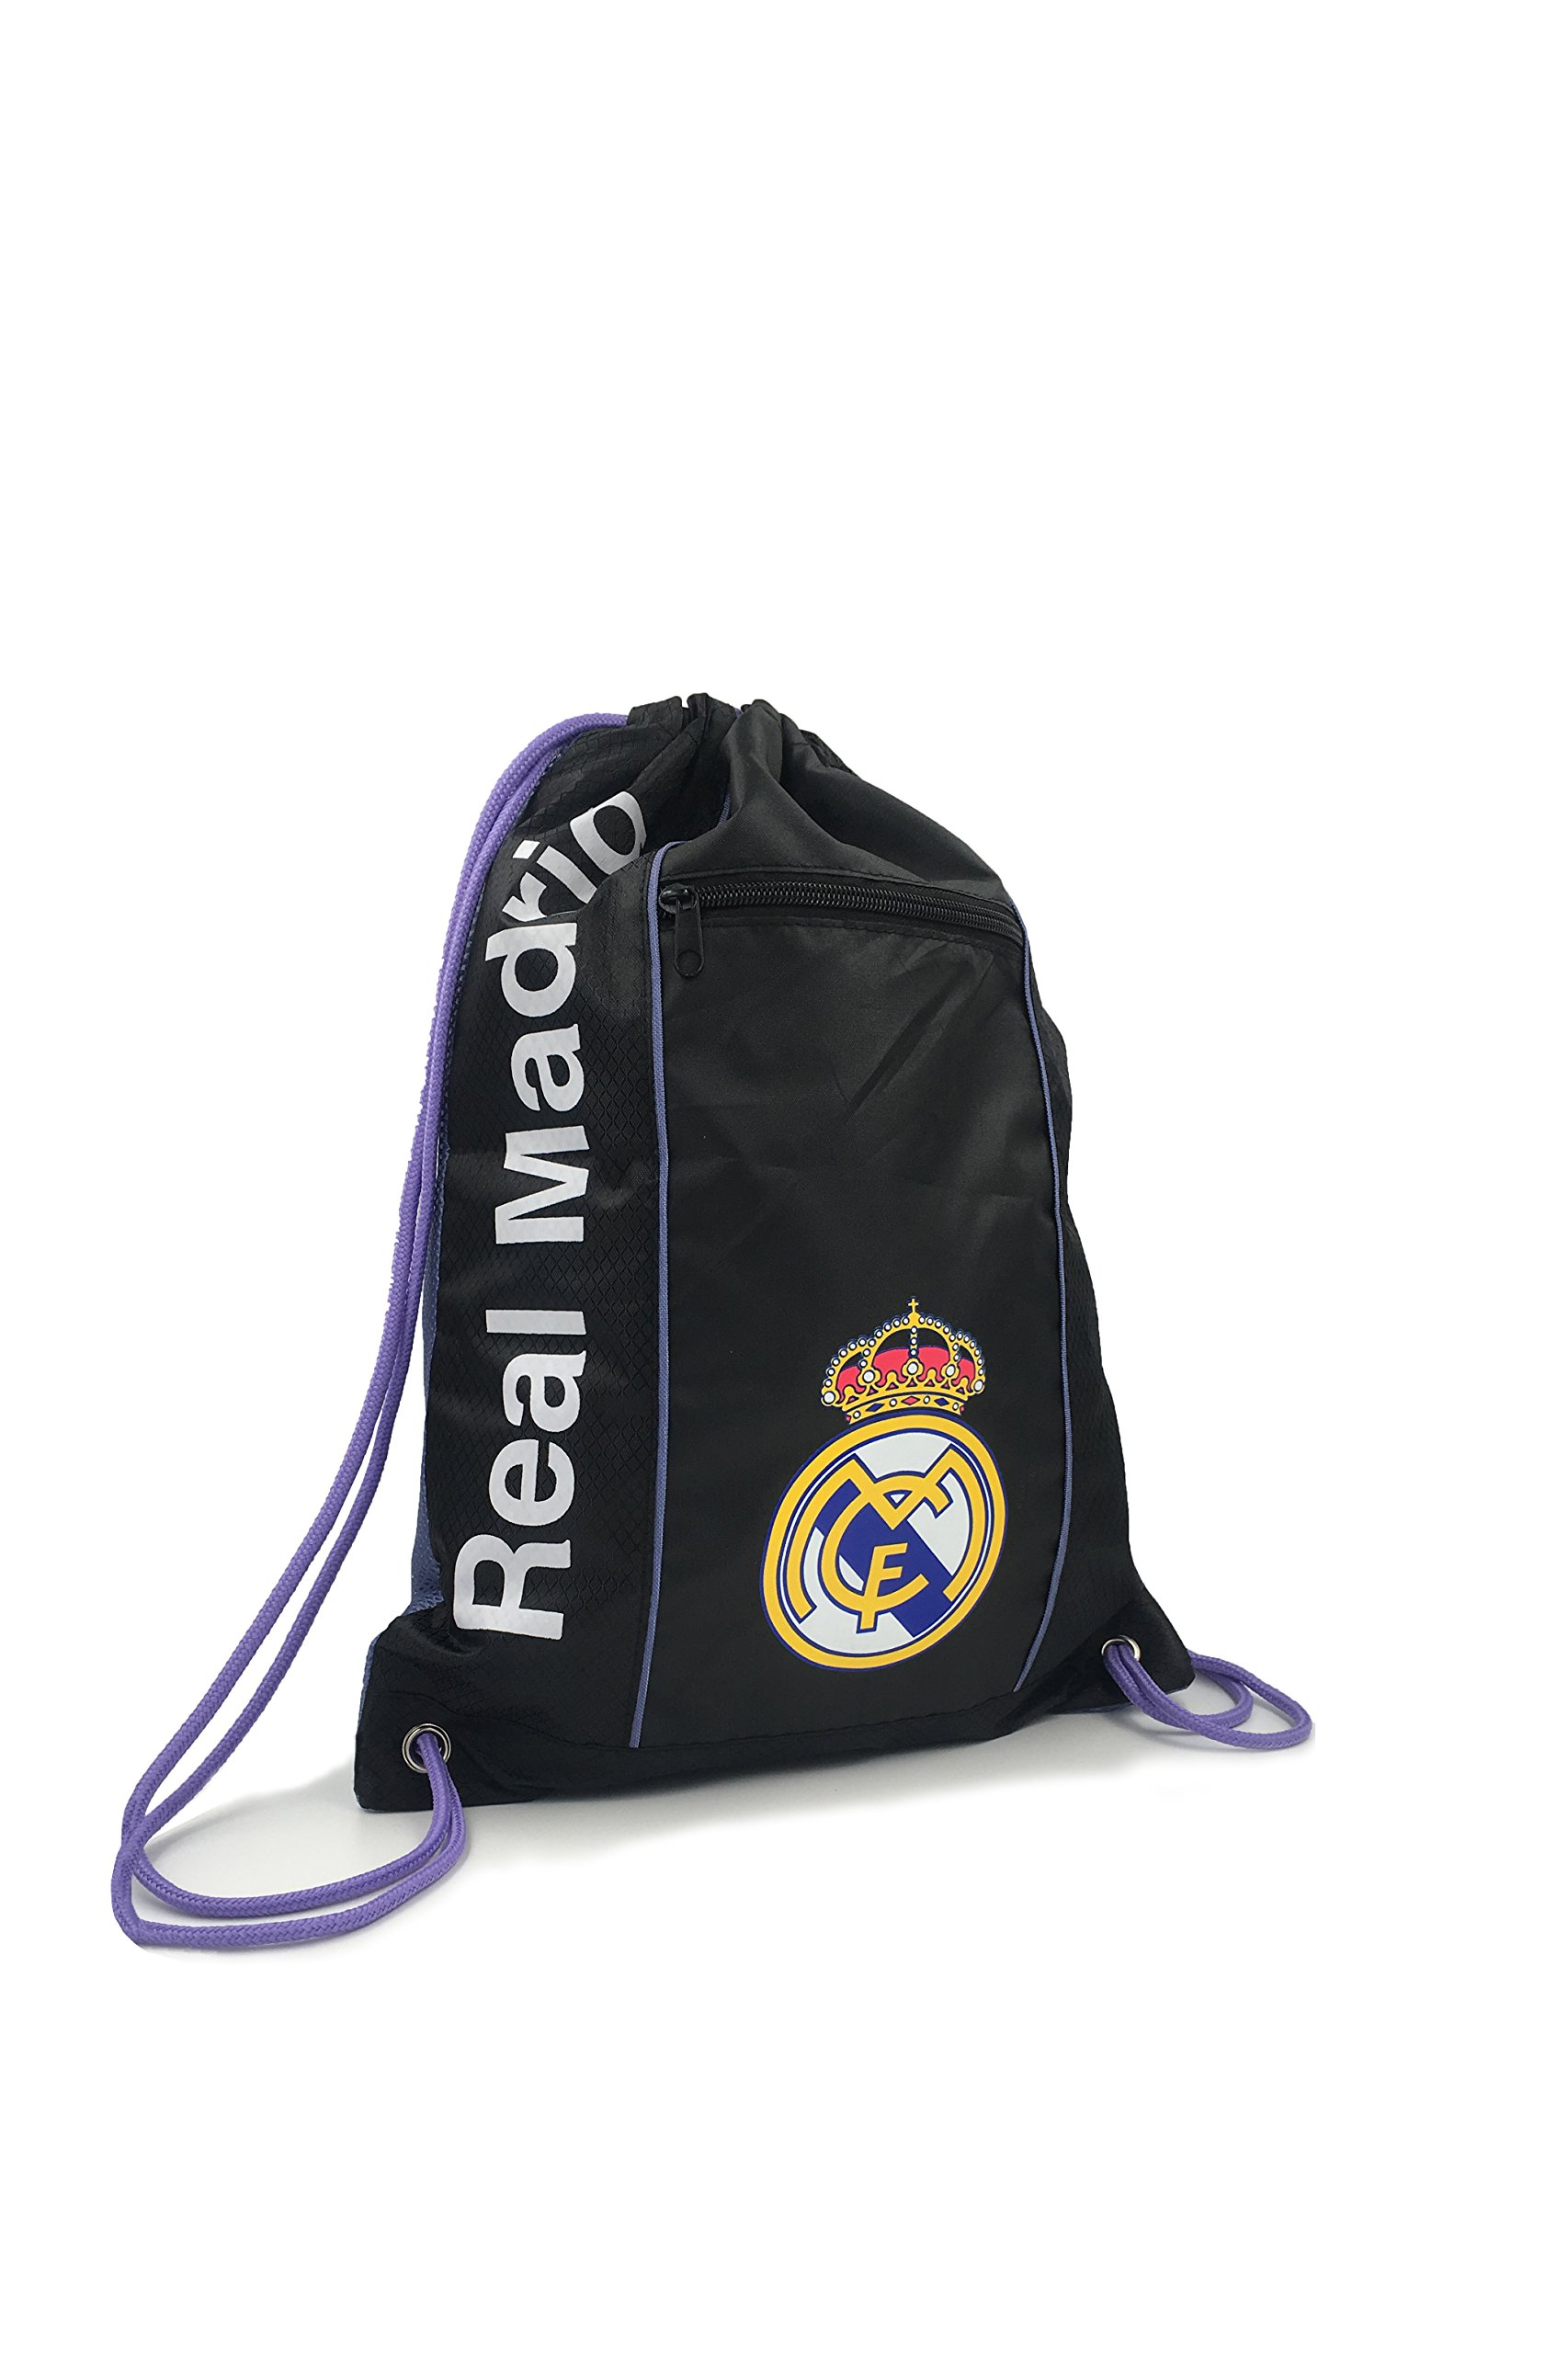 REAL MADRID Official Licensed 2017 TEAM AWAY BLACK CINCH BAG SACK by ICON SPORTS … by Icon Sports (Image #2)